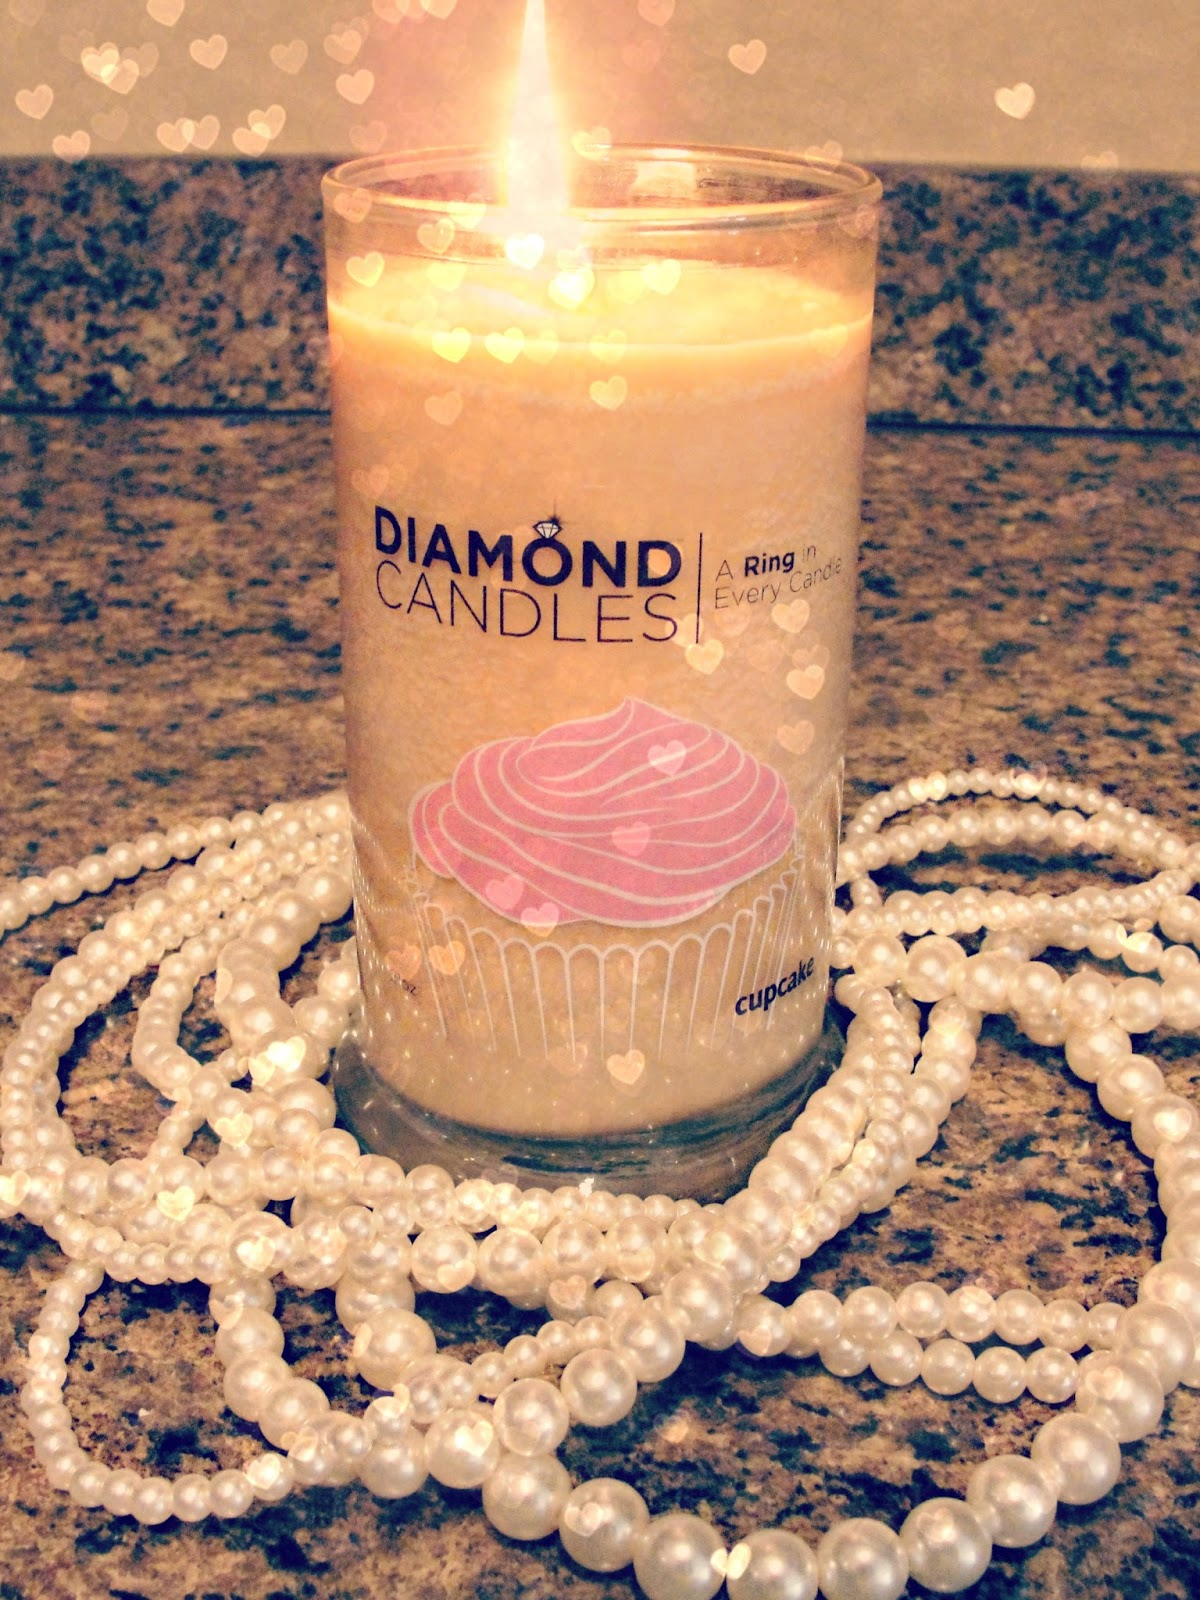 Candles With Gifts Inside Beauty Guide 101 Diamond Candle Review 43 Giveaway Closed